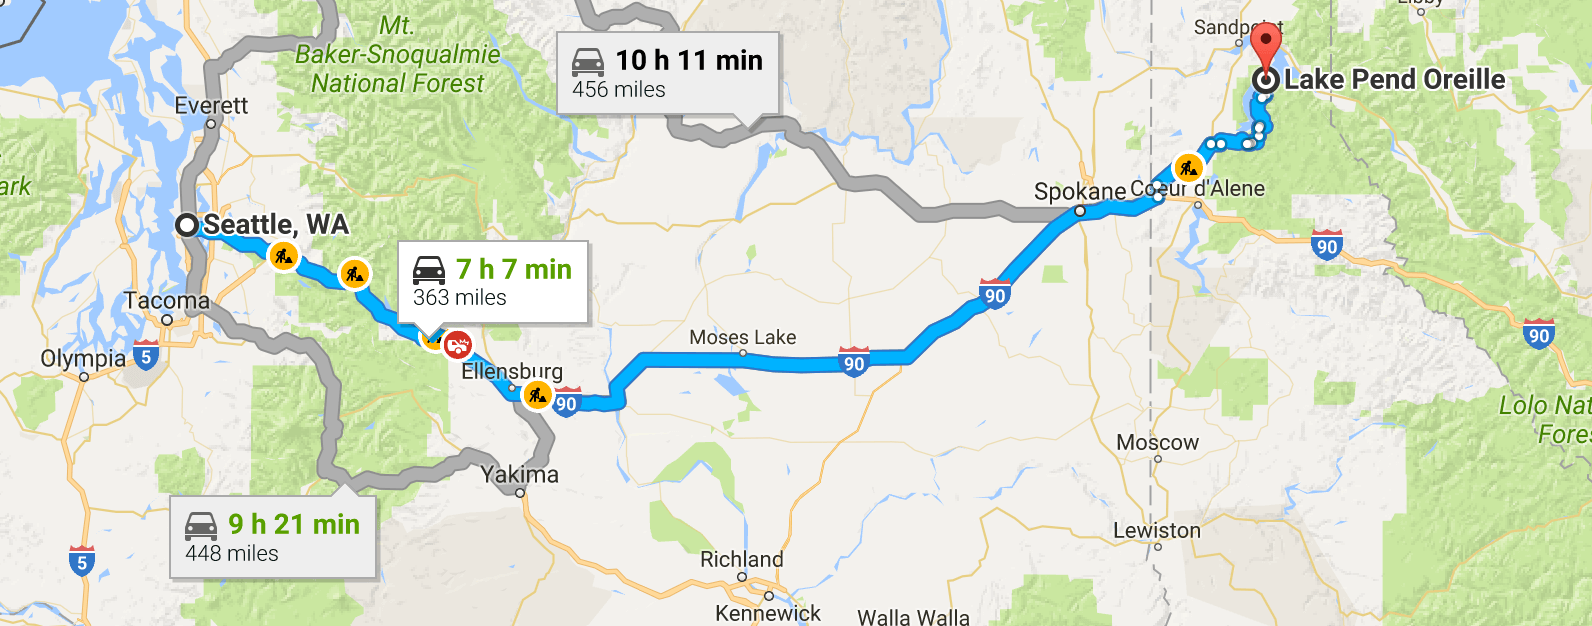 5 Idaho Adventures Within a Days Drive from Seattle Visit Idaho